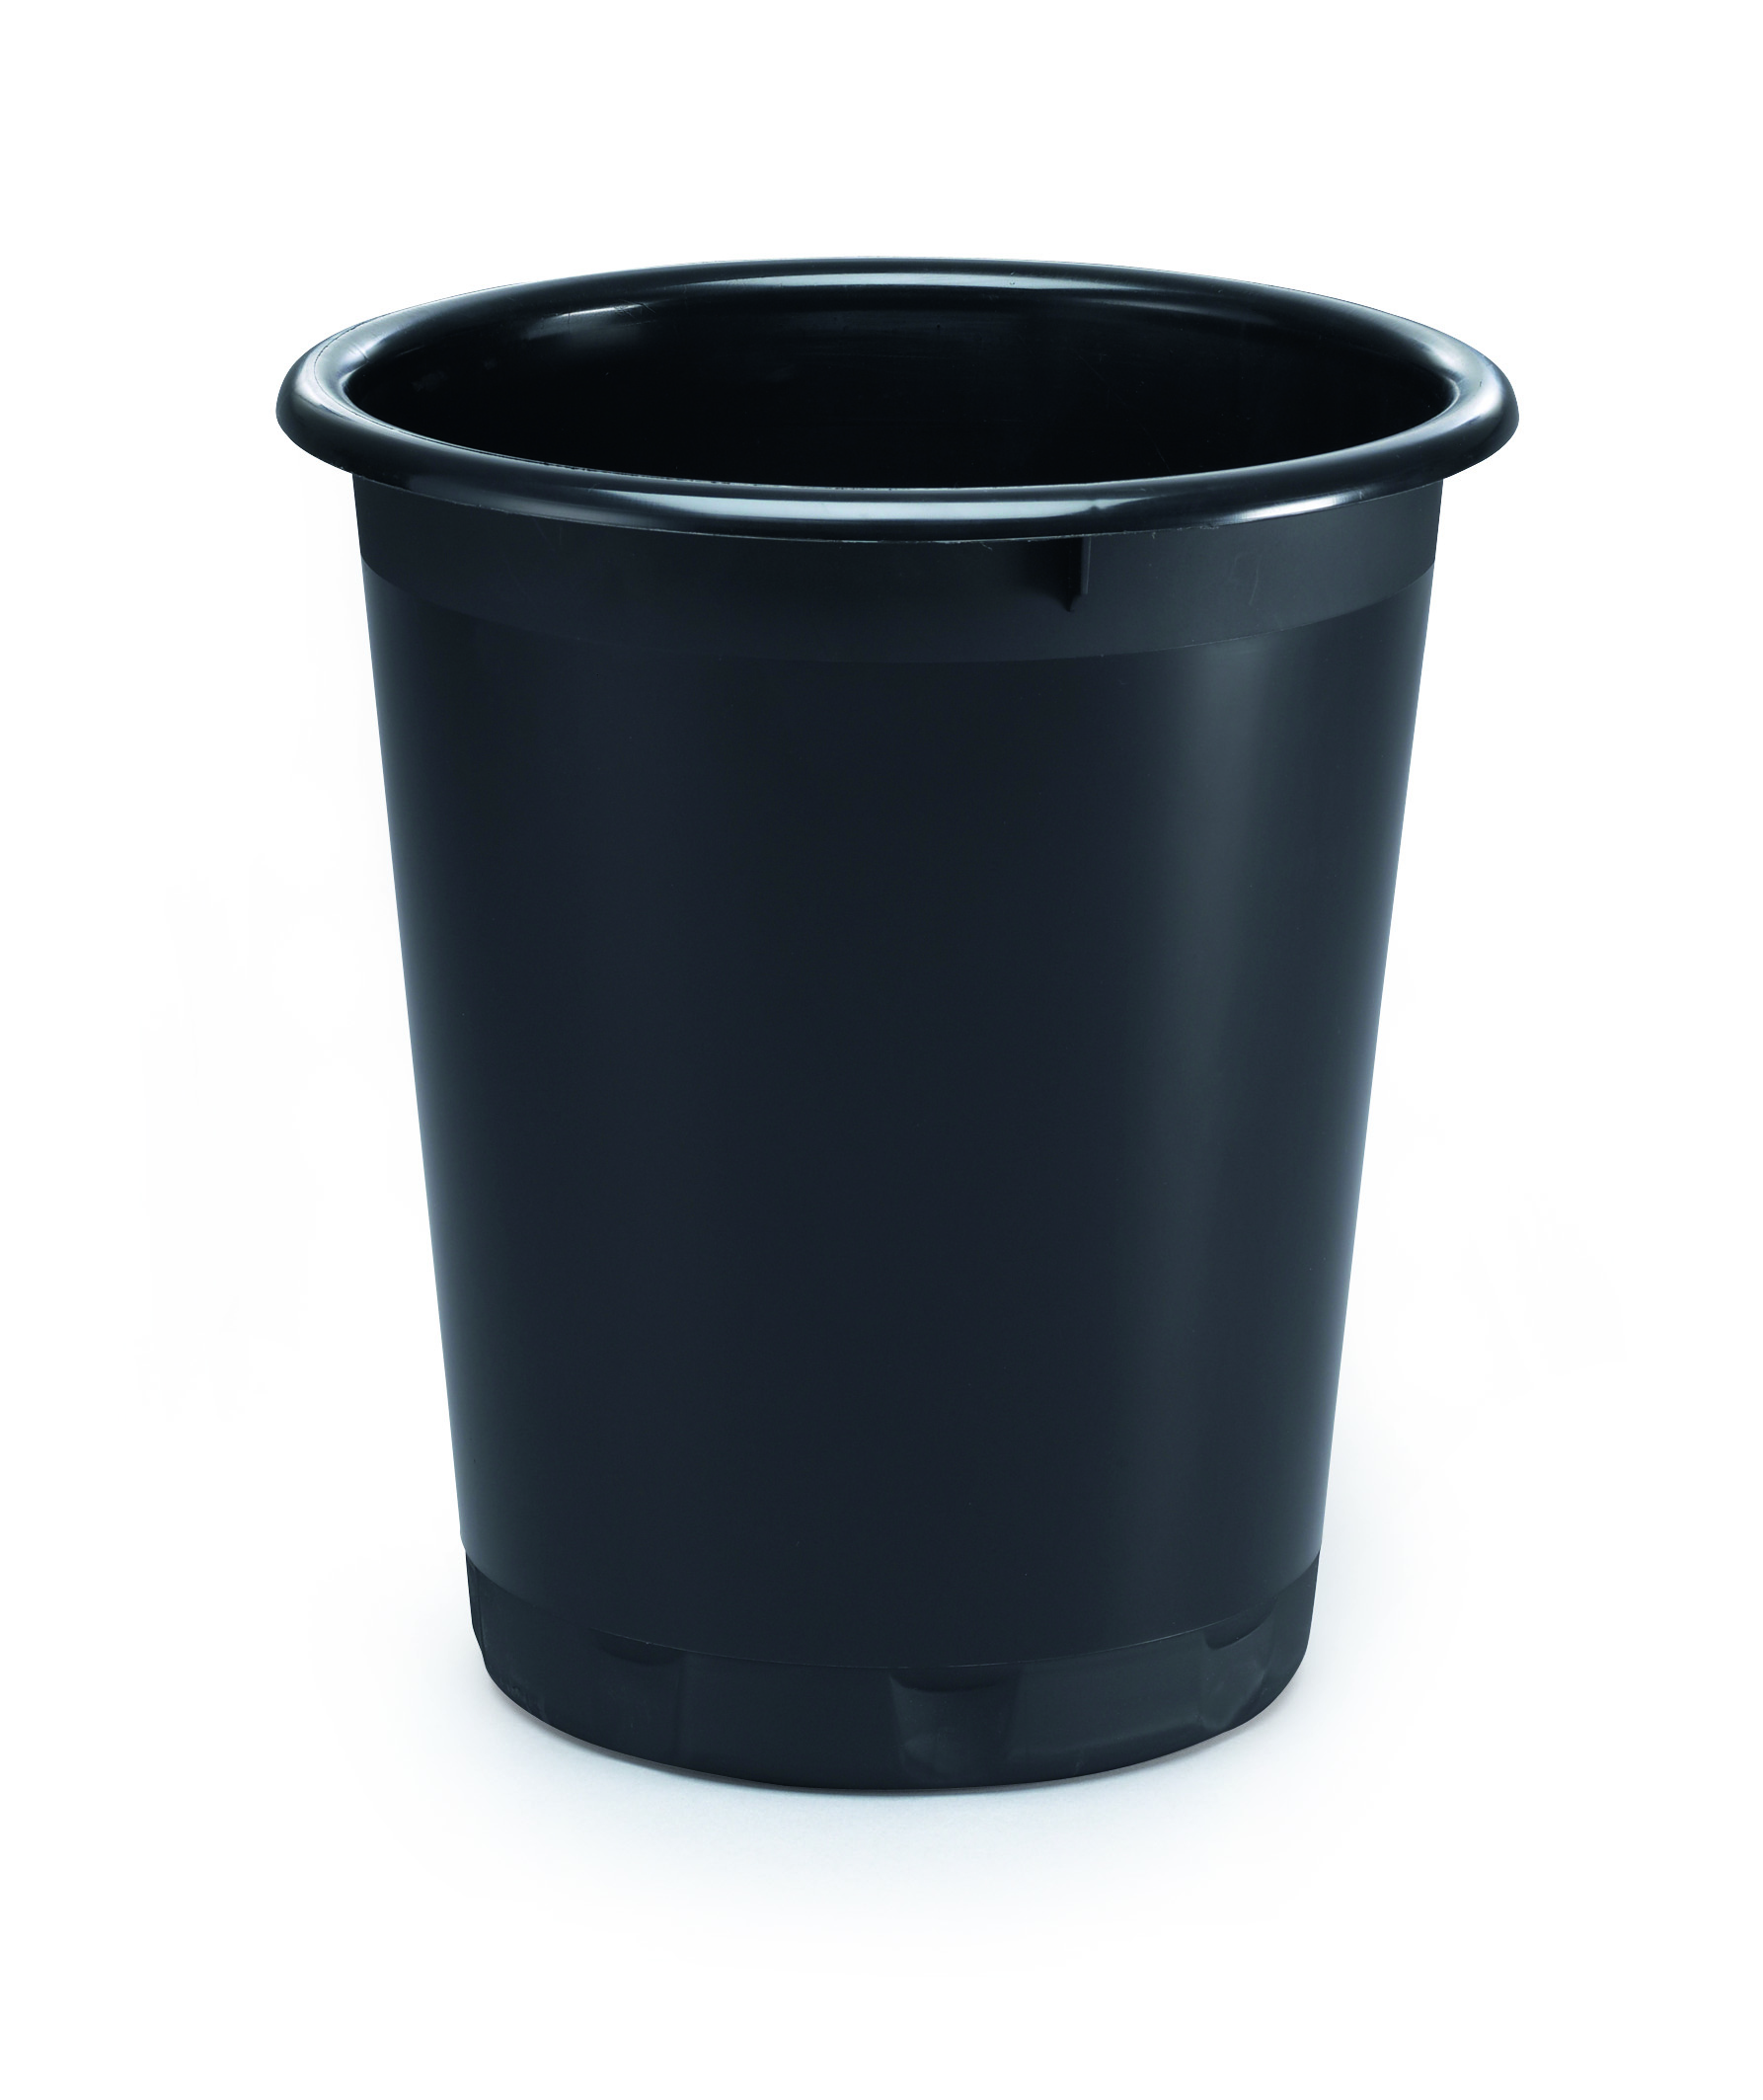 Durable Basic Waste Basket Black